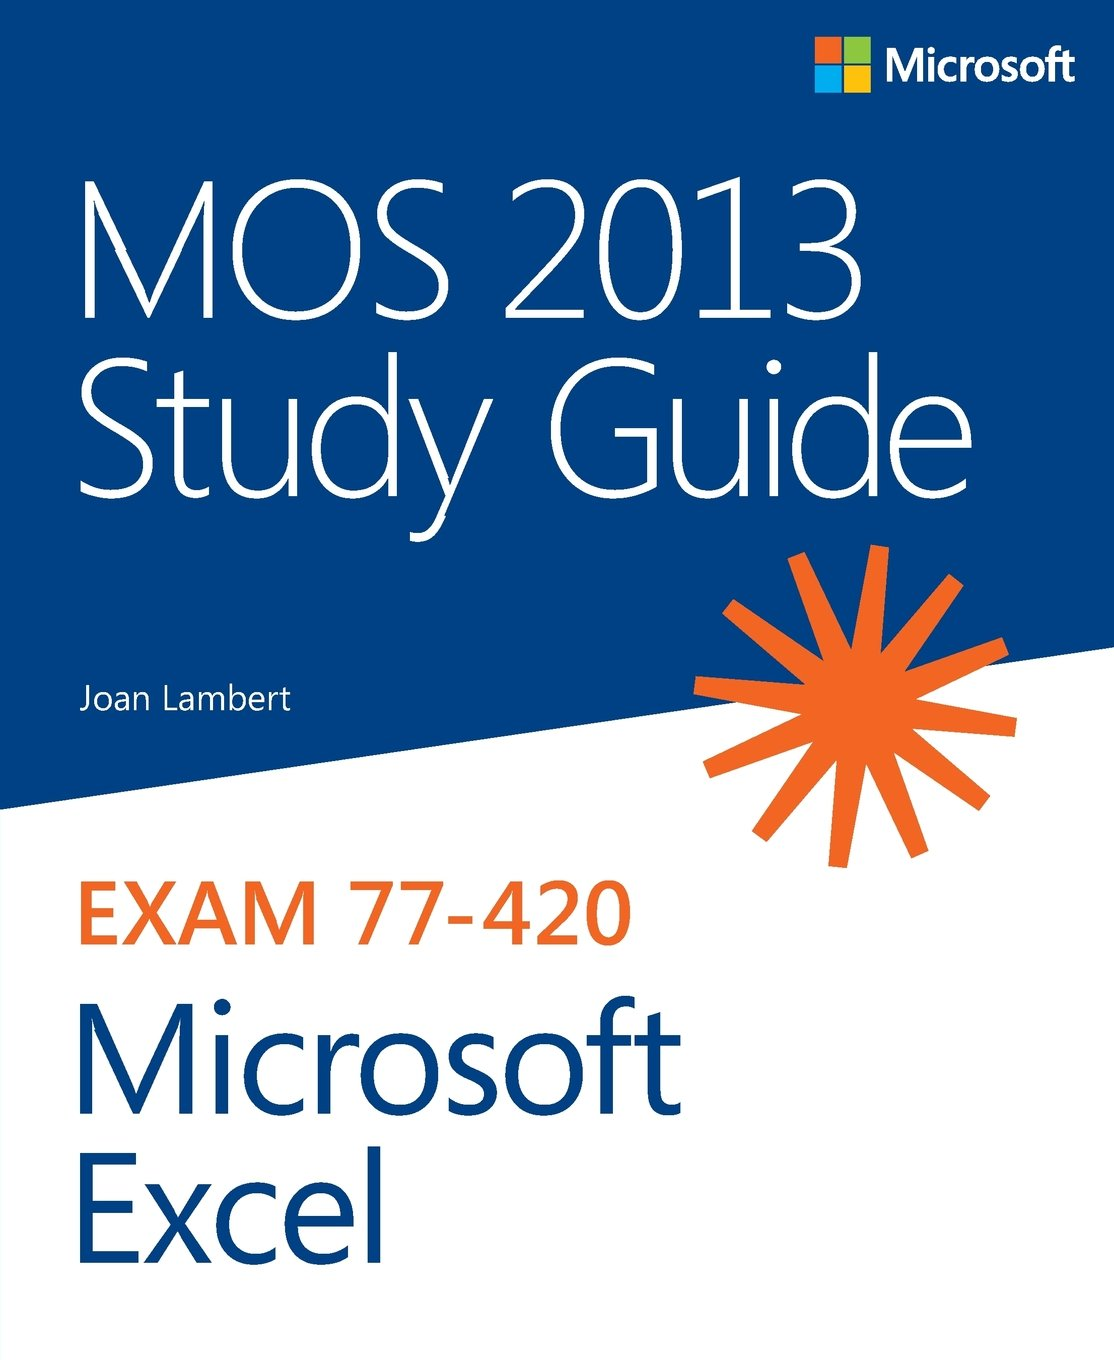 Mos 2013 study guide for microsoft excel amazon joan mos 2013 study guide for microsoft excel amazon joan lambert 9780735669208 books xflitez Gallery